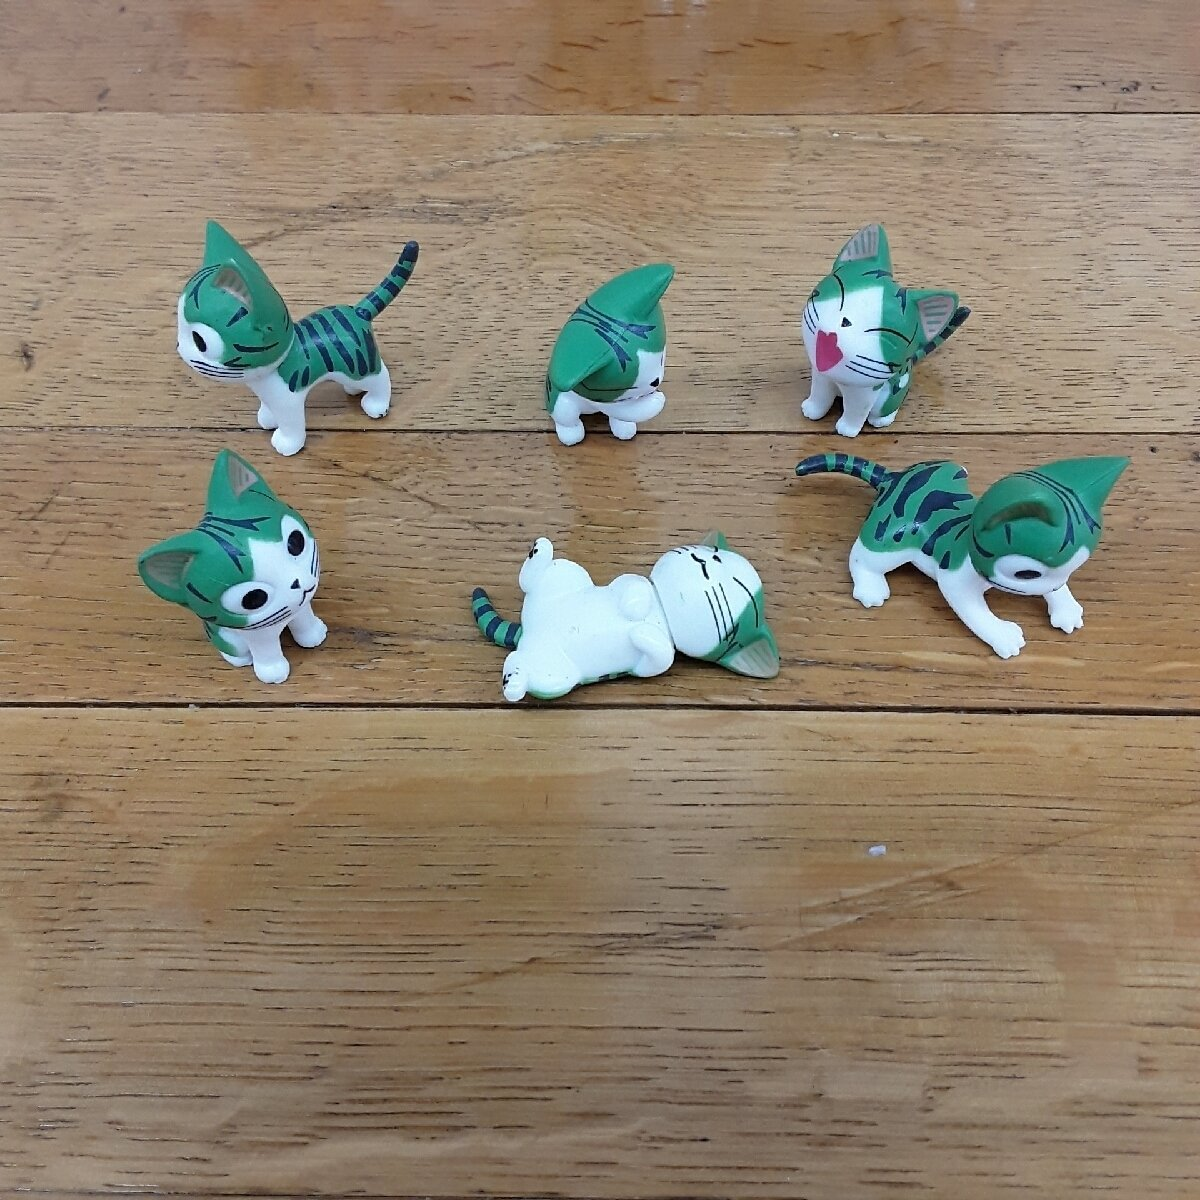 Anime Styled Cat Miniatures (Green or Grey)